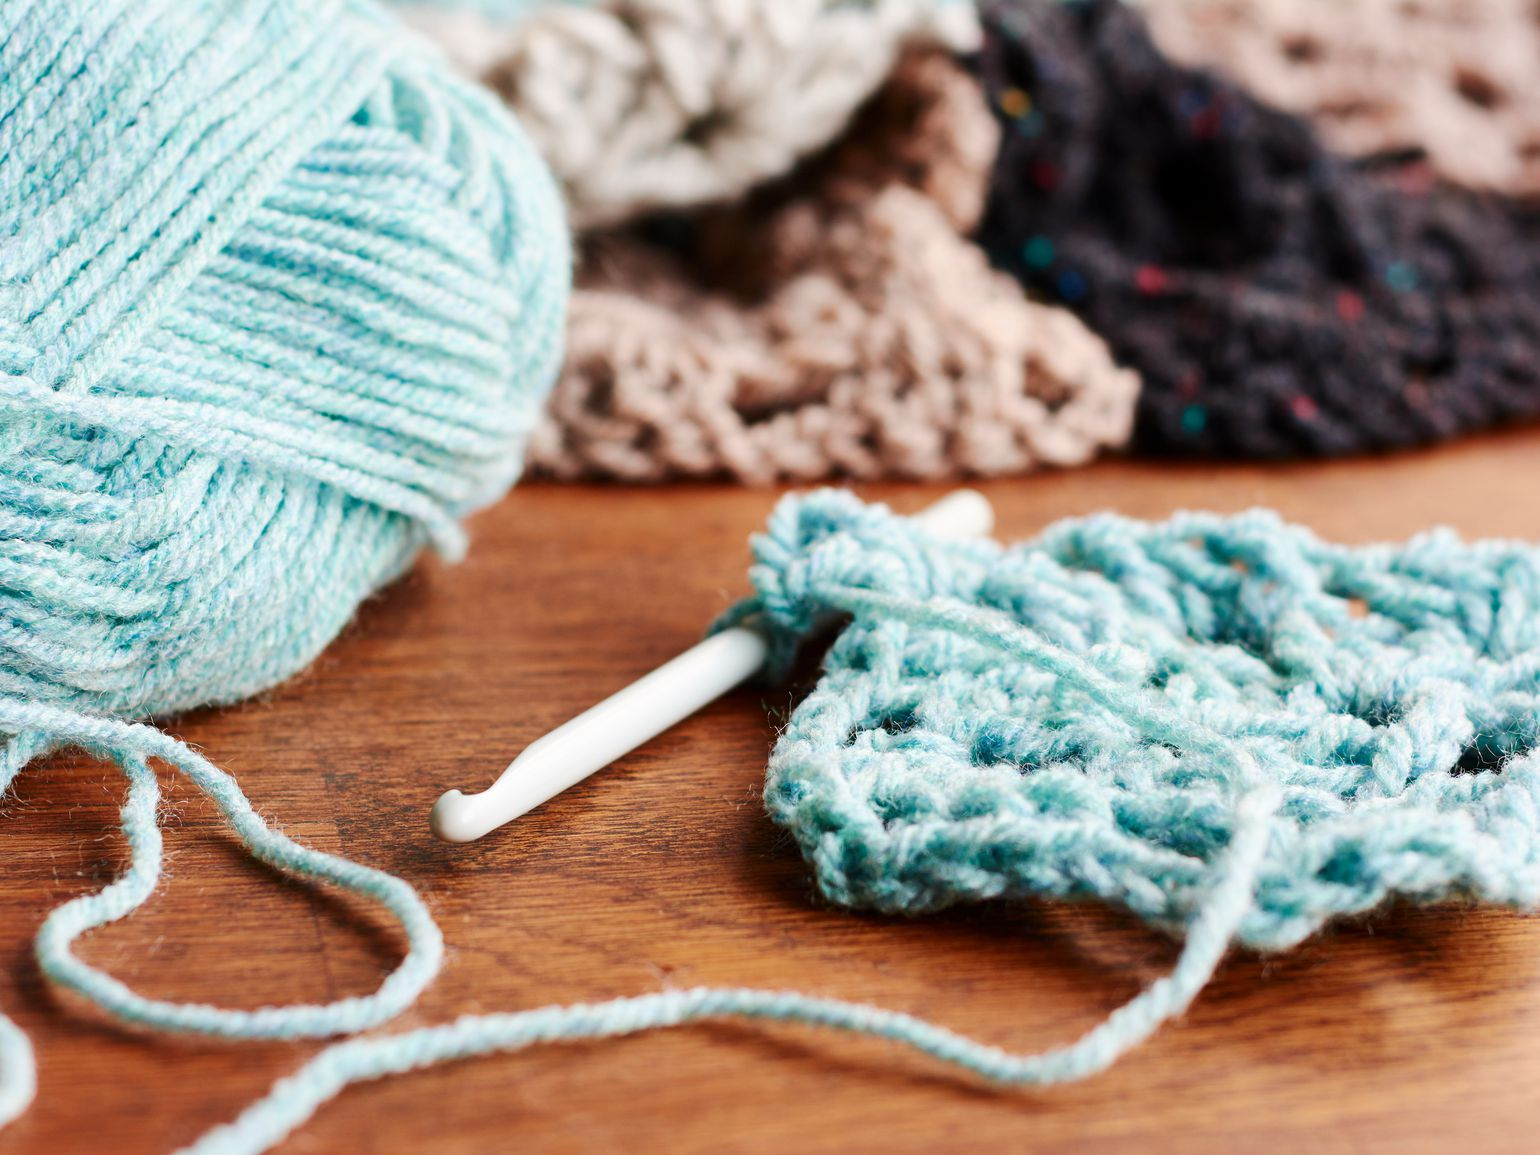 Crocheting Yarn